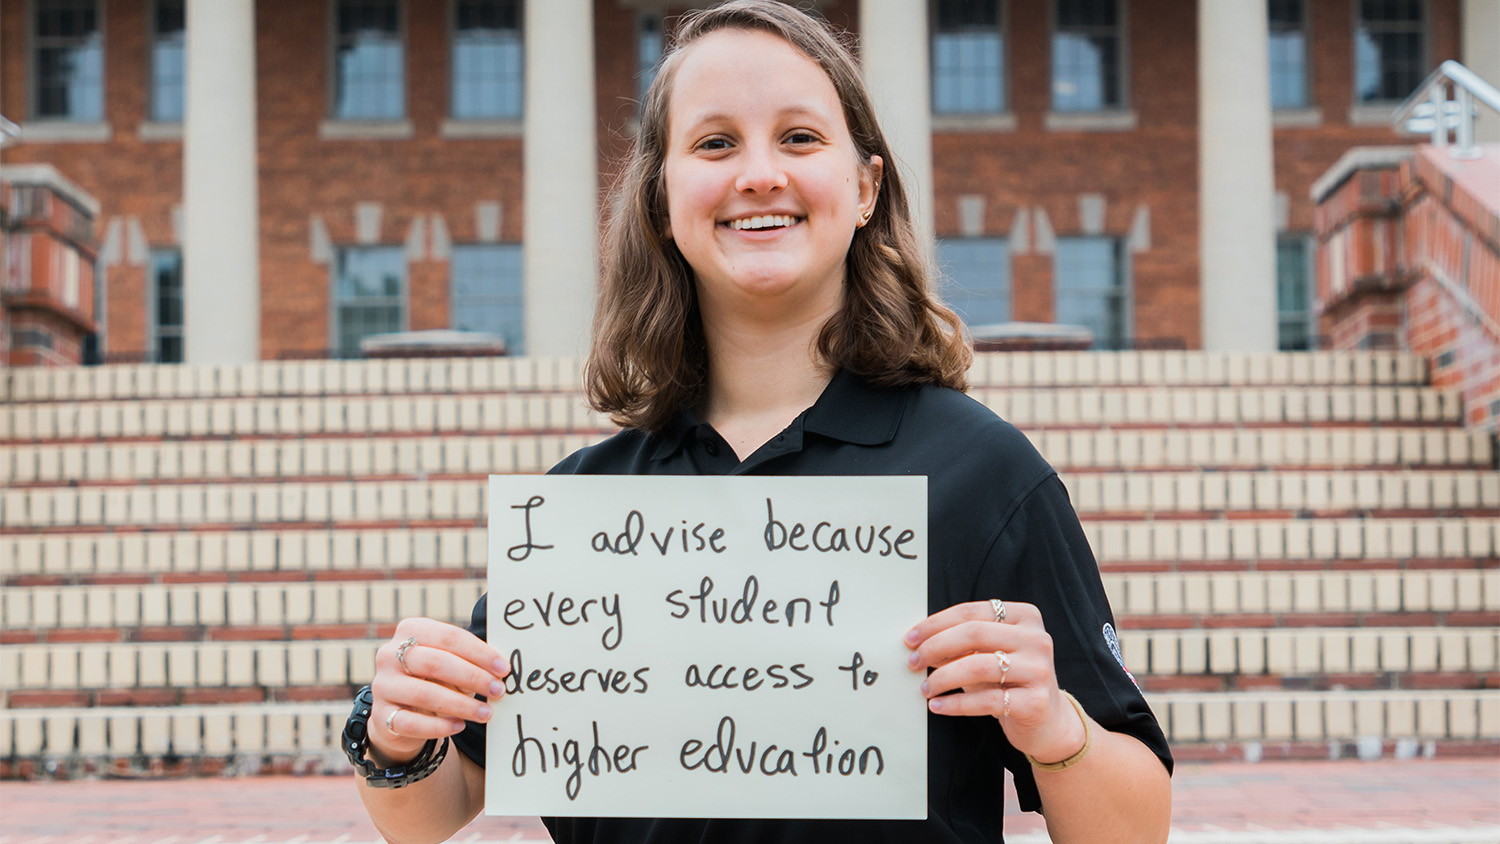 """Kiera Lindner holds a sign that reads """"I advise because every student deserves access to higher education"""""""